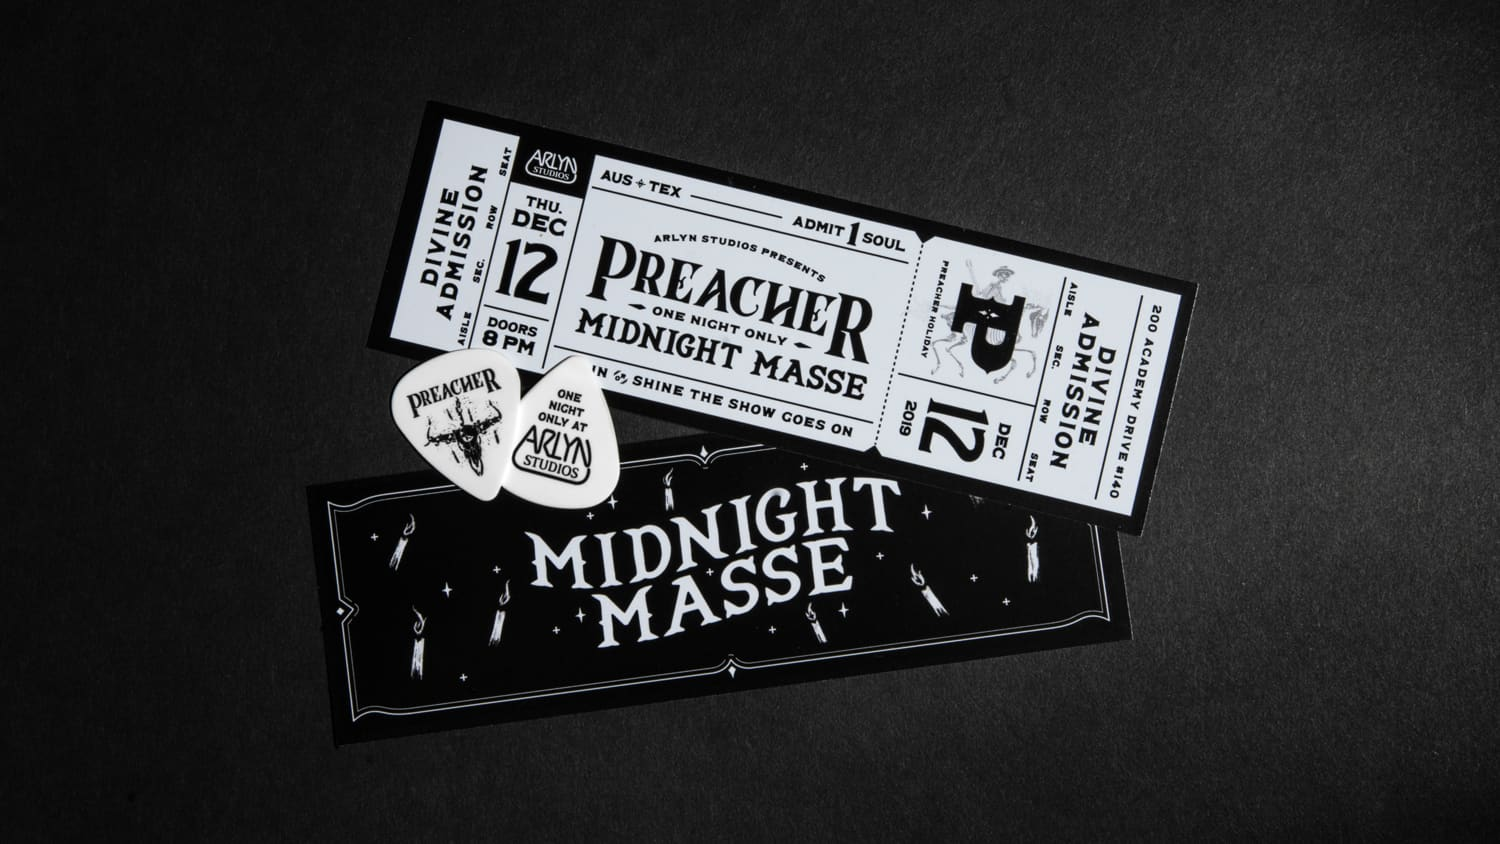 Preacher Midnight Masse